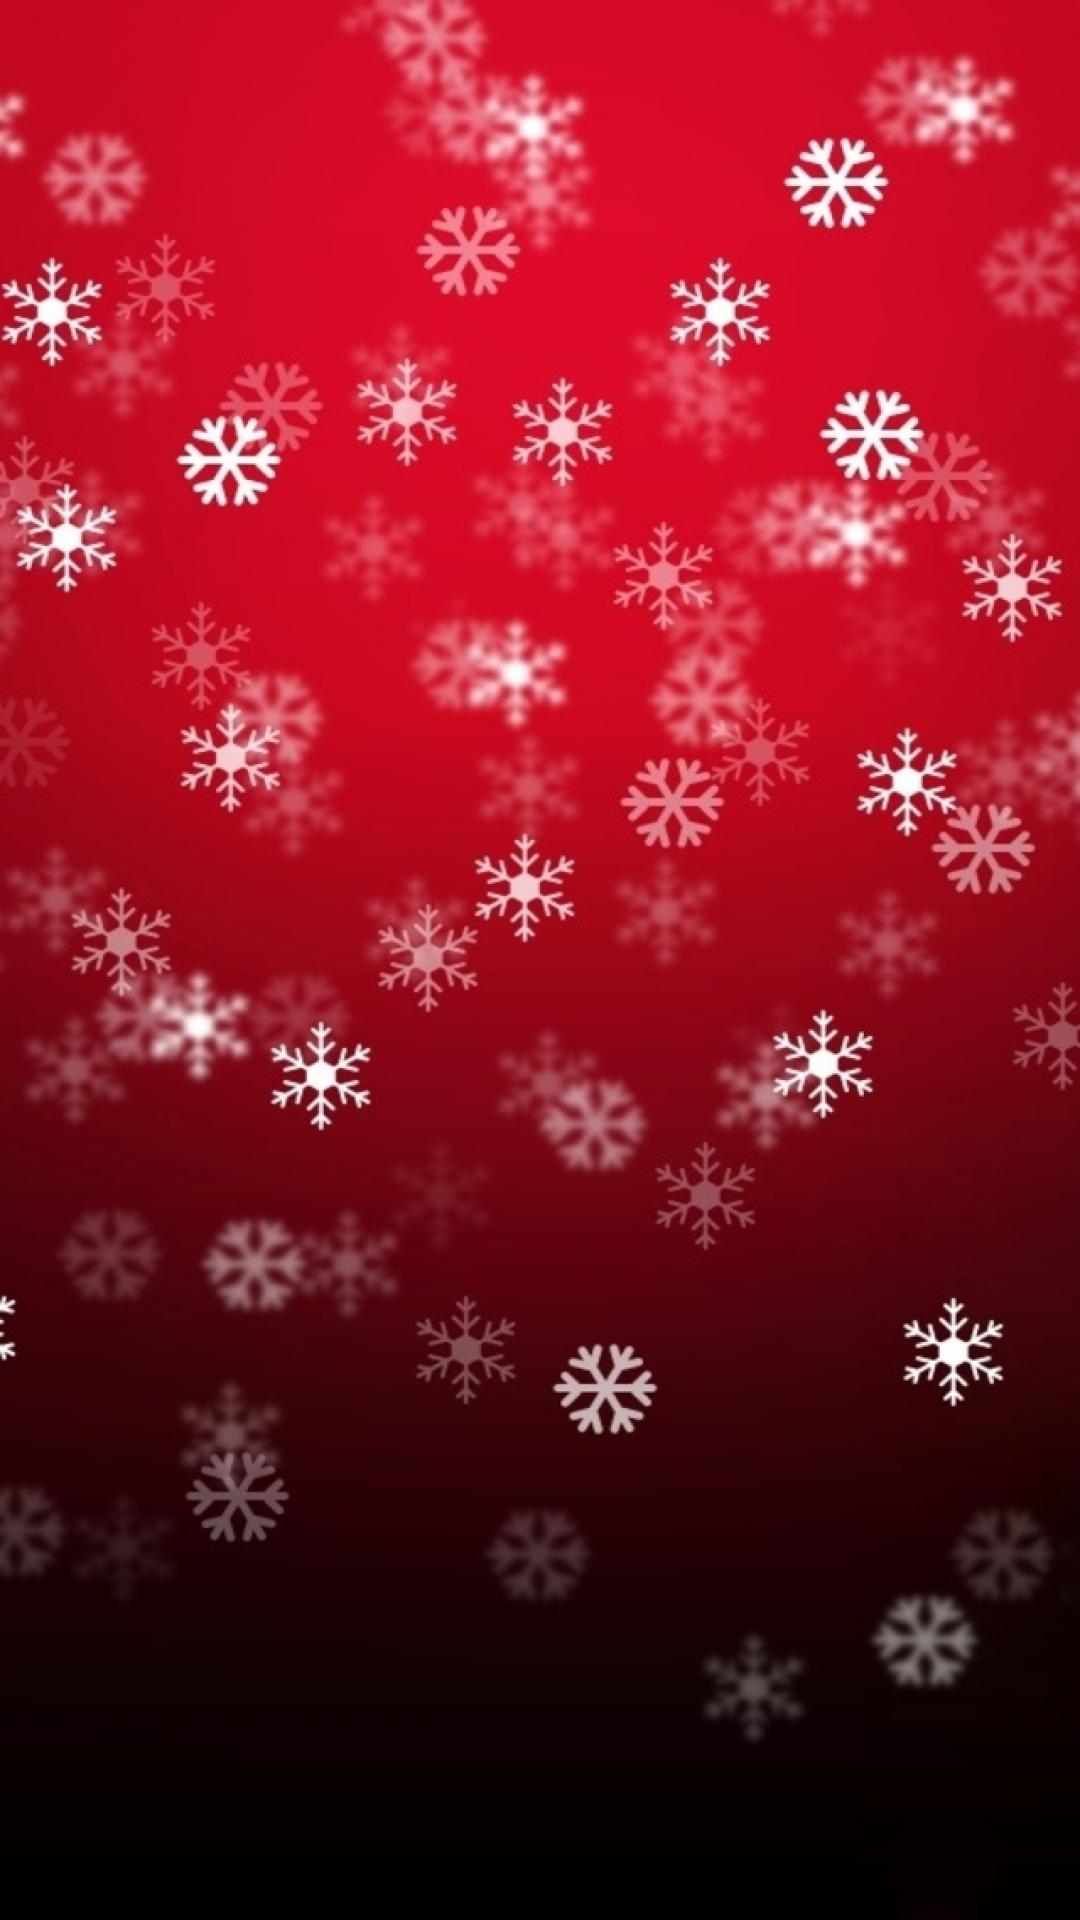 Christmas Snowflake Pattern Background Iphone 8 Wallpaper - Iphone 8 Christmas Background , HD Wallpaper & Backgrounds